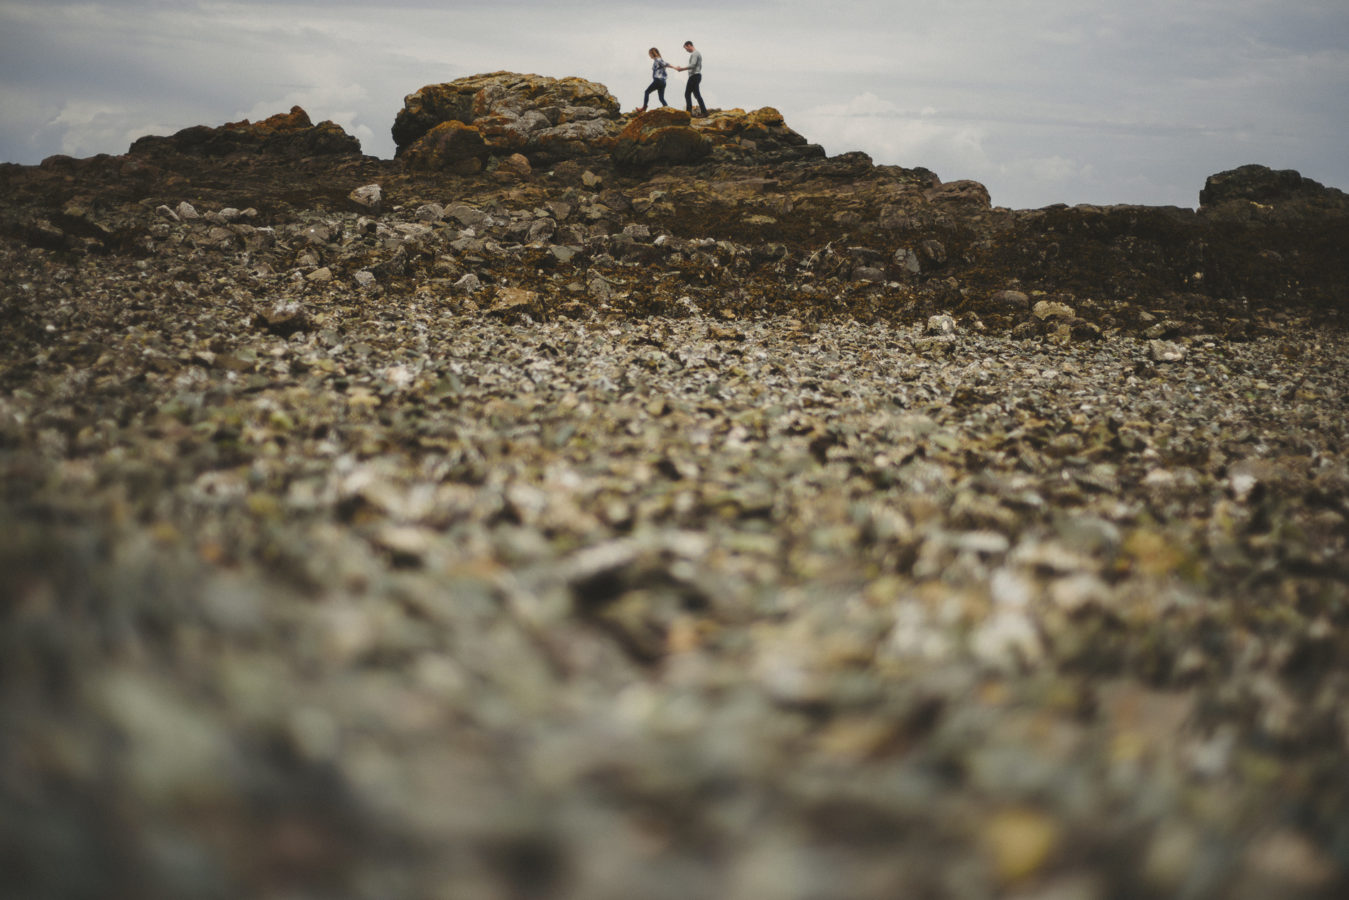 couple walking along a rocky area on the beach with the beach out of focus in the foreground